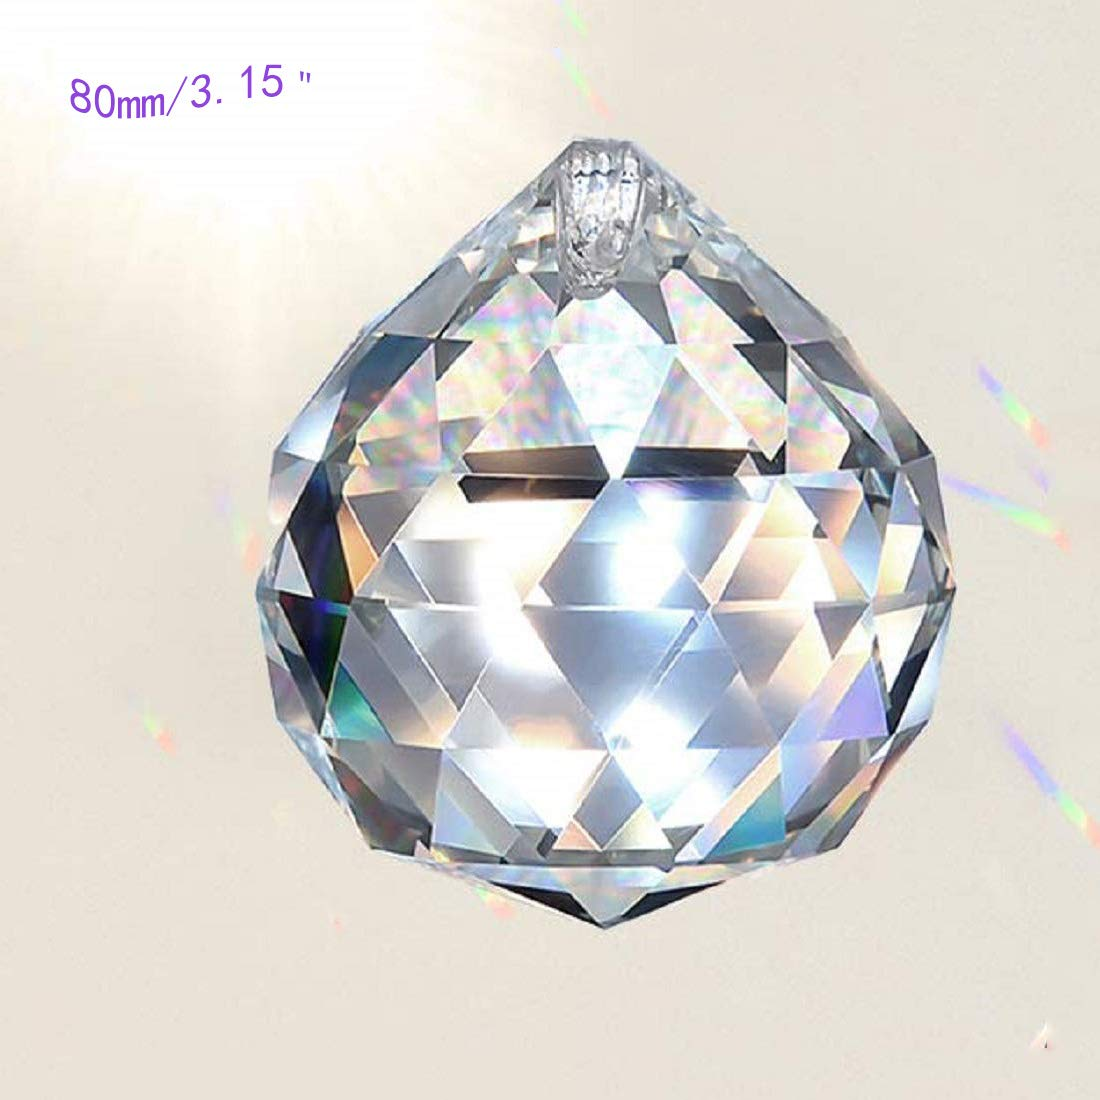 MerryNine Clear Crystal Ball Prism Suncatcher Rainbow Pendants Maker, Hanging Crystals Prisms for Windows, for Feng Shui, for Gift(80mm/3.15'' 1pack)